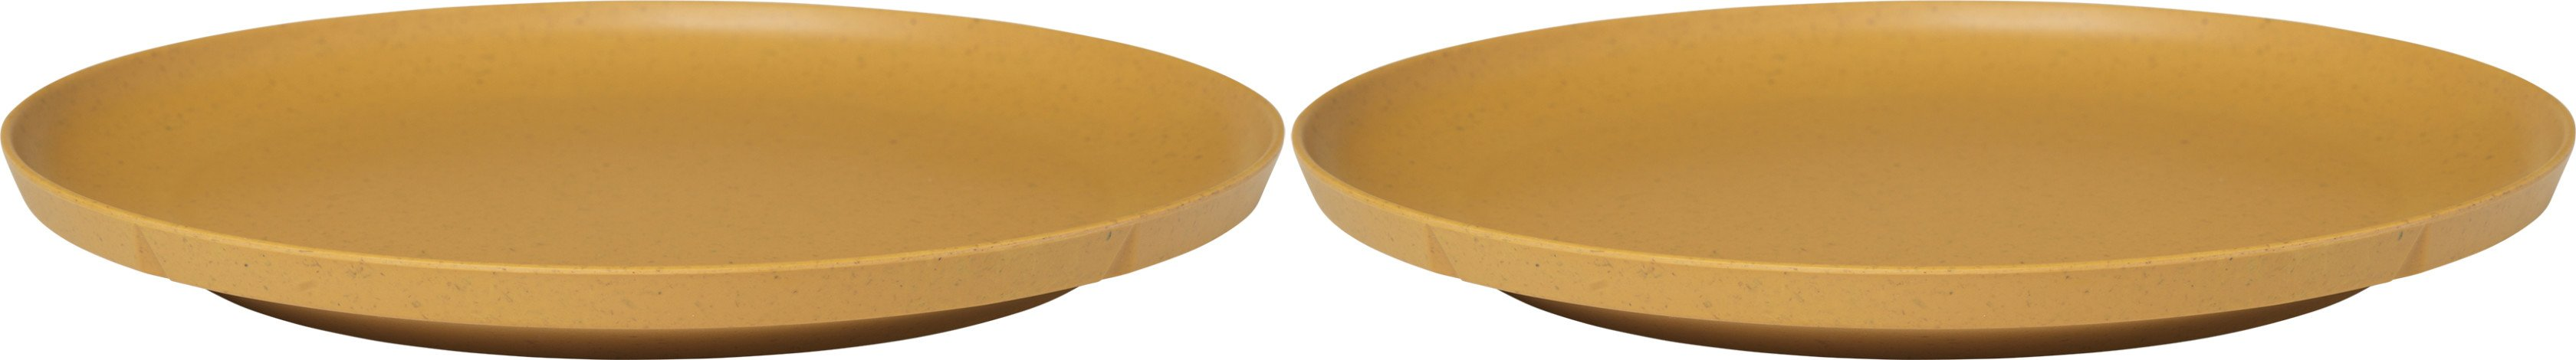 Grand Cru Take Plate 2 pcs. Ø26 cm Yellow, Rosendahl